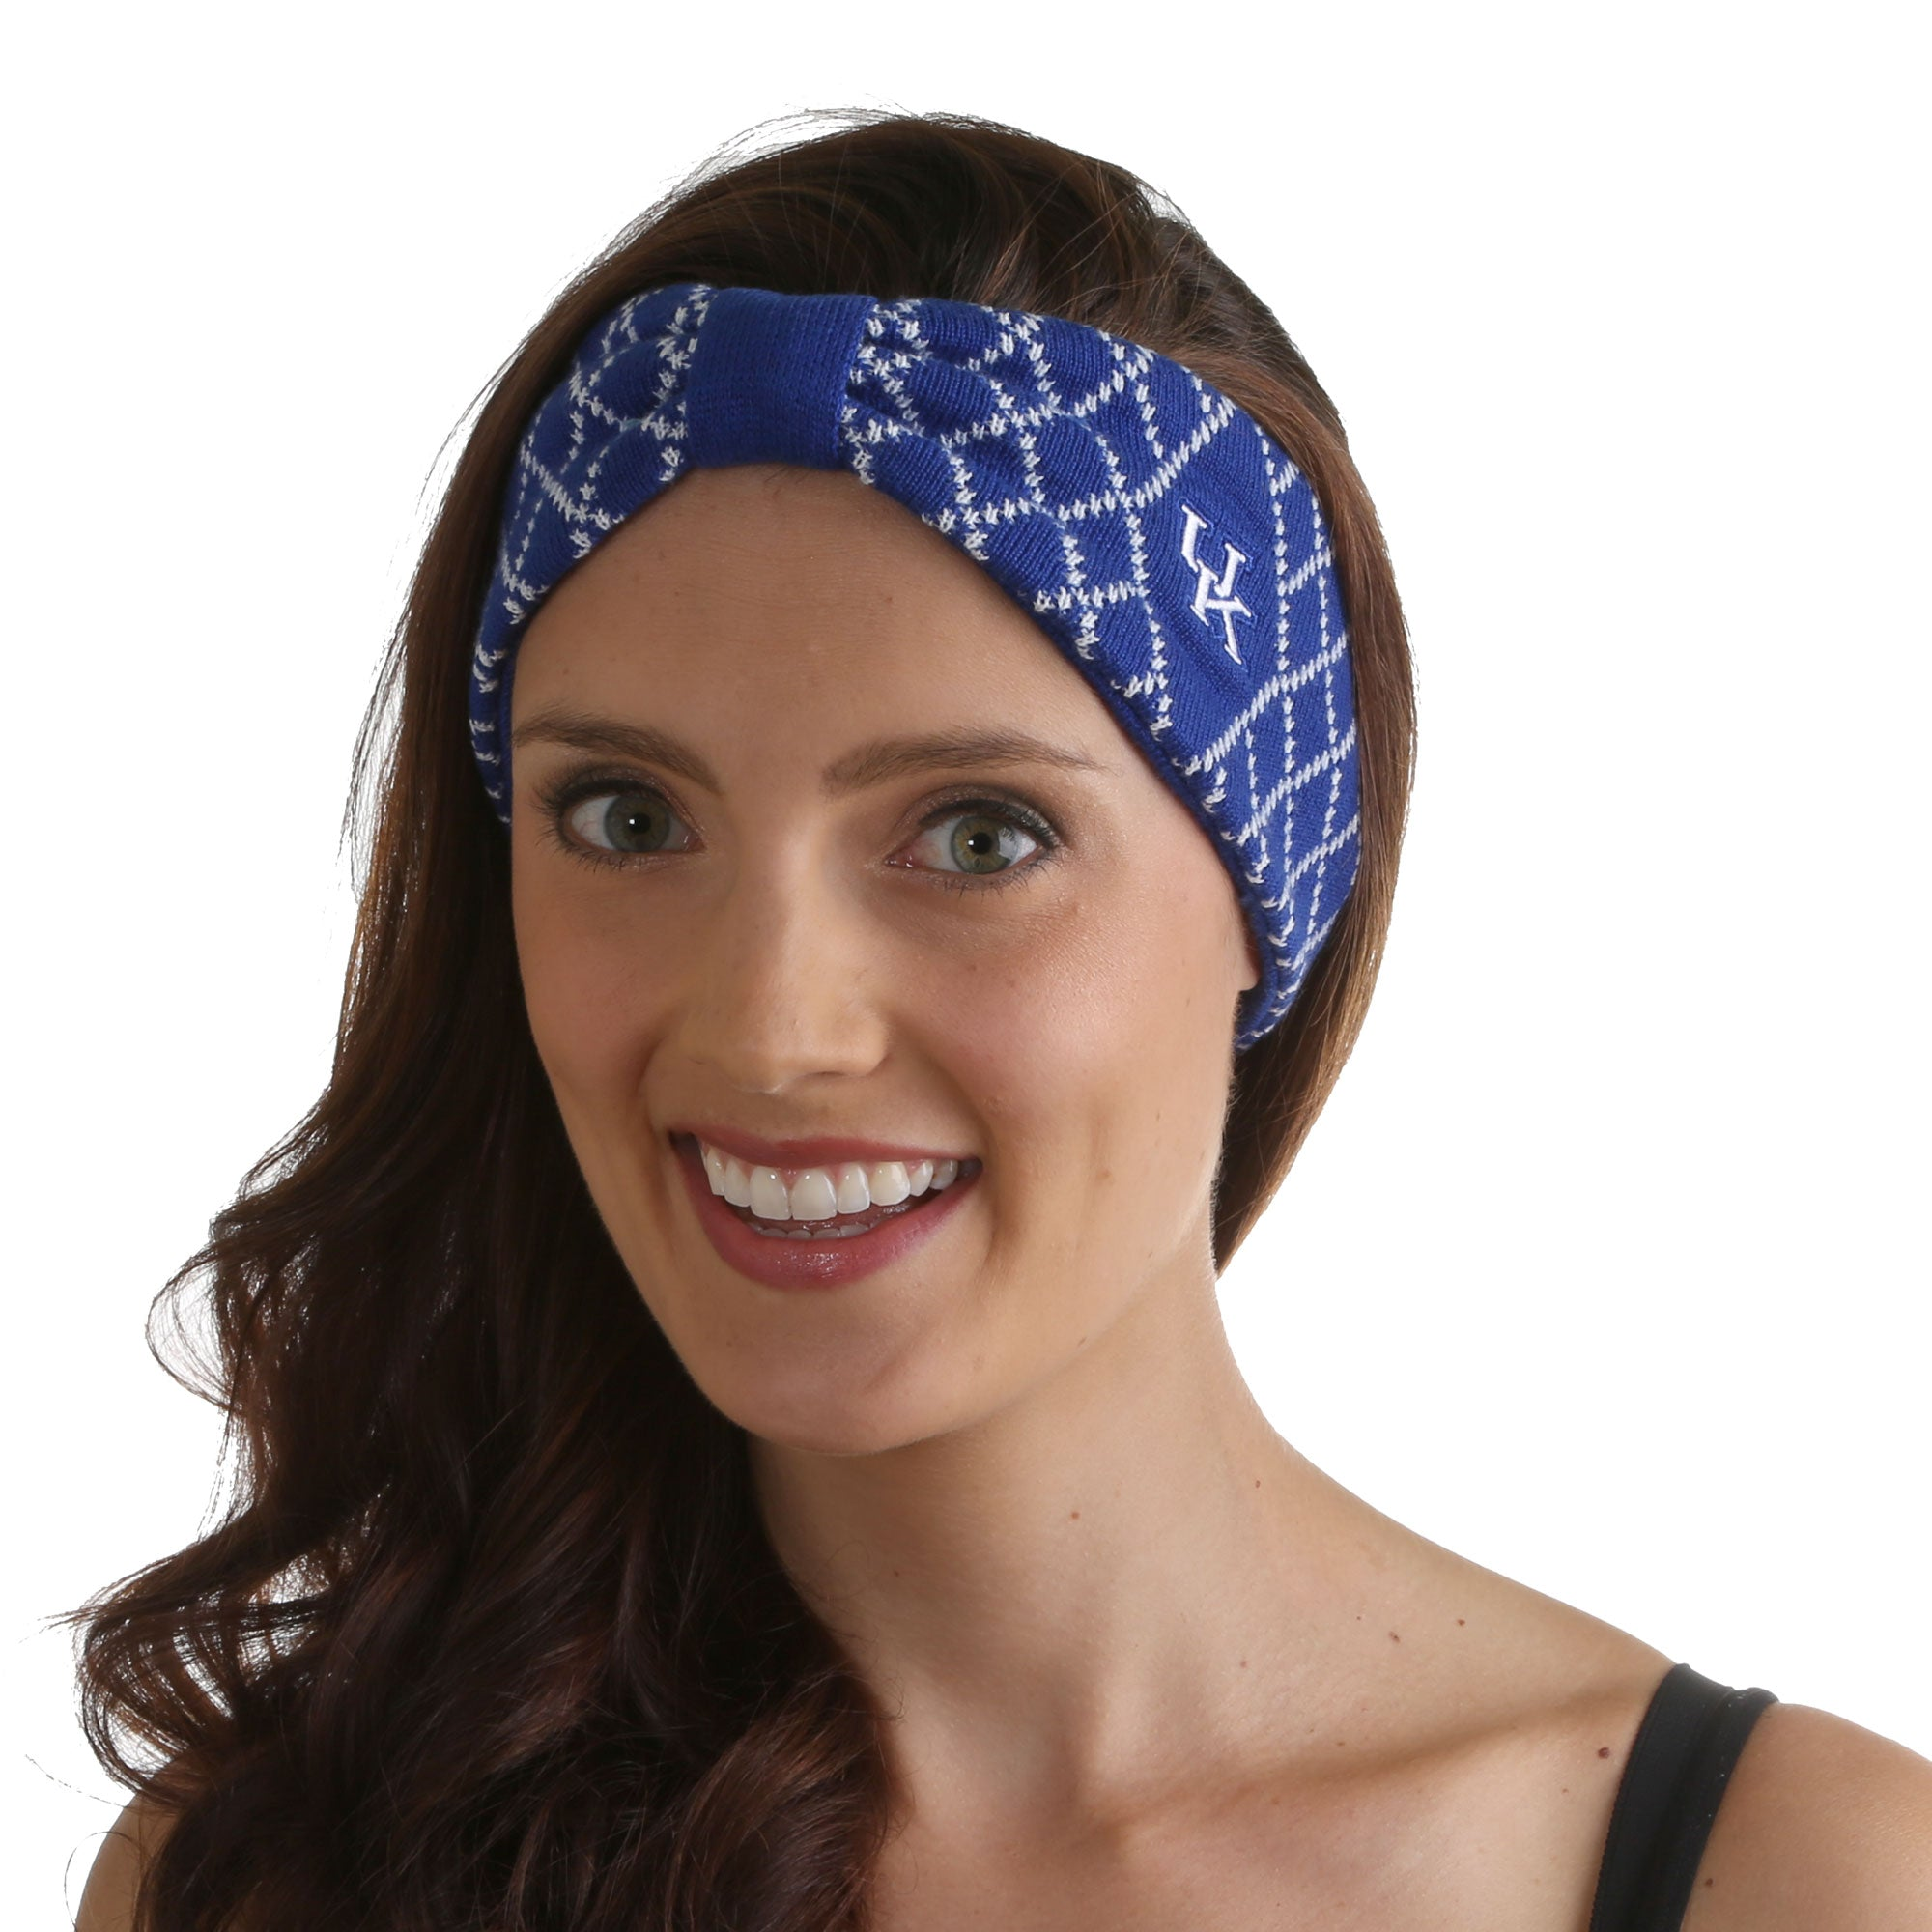 KENTUCKY WILDCATS KNIT HEADBAND